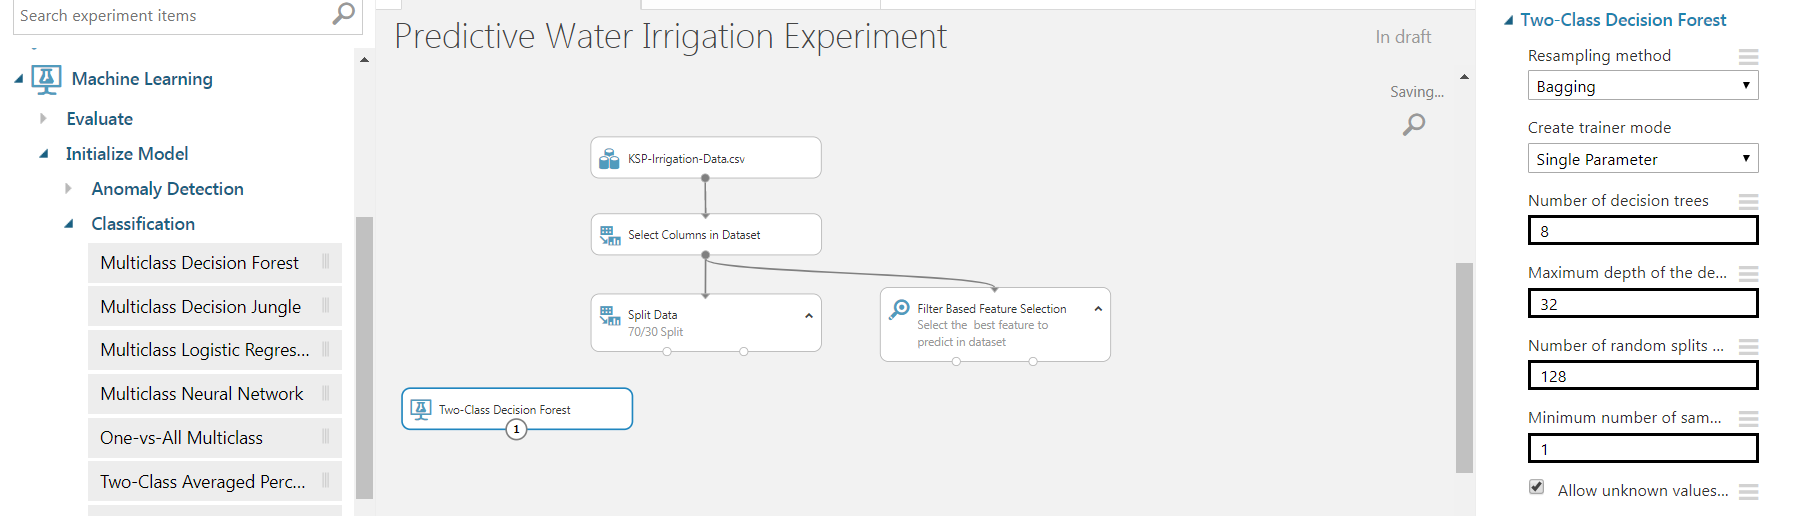 9 - Agriculture Water Irrigation - Predictive Analytics Using Microsoft Azure ML